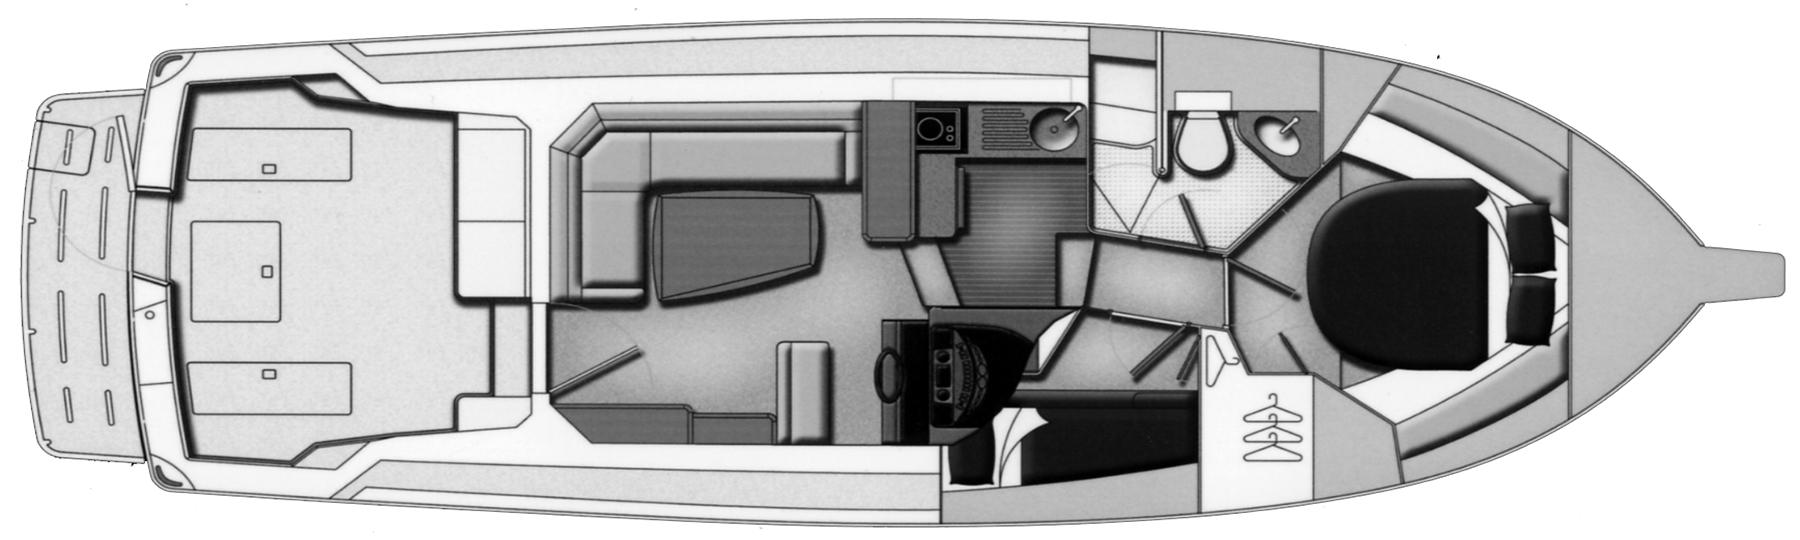 37 Convertible Floor Plan 1